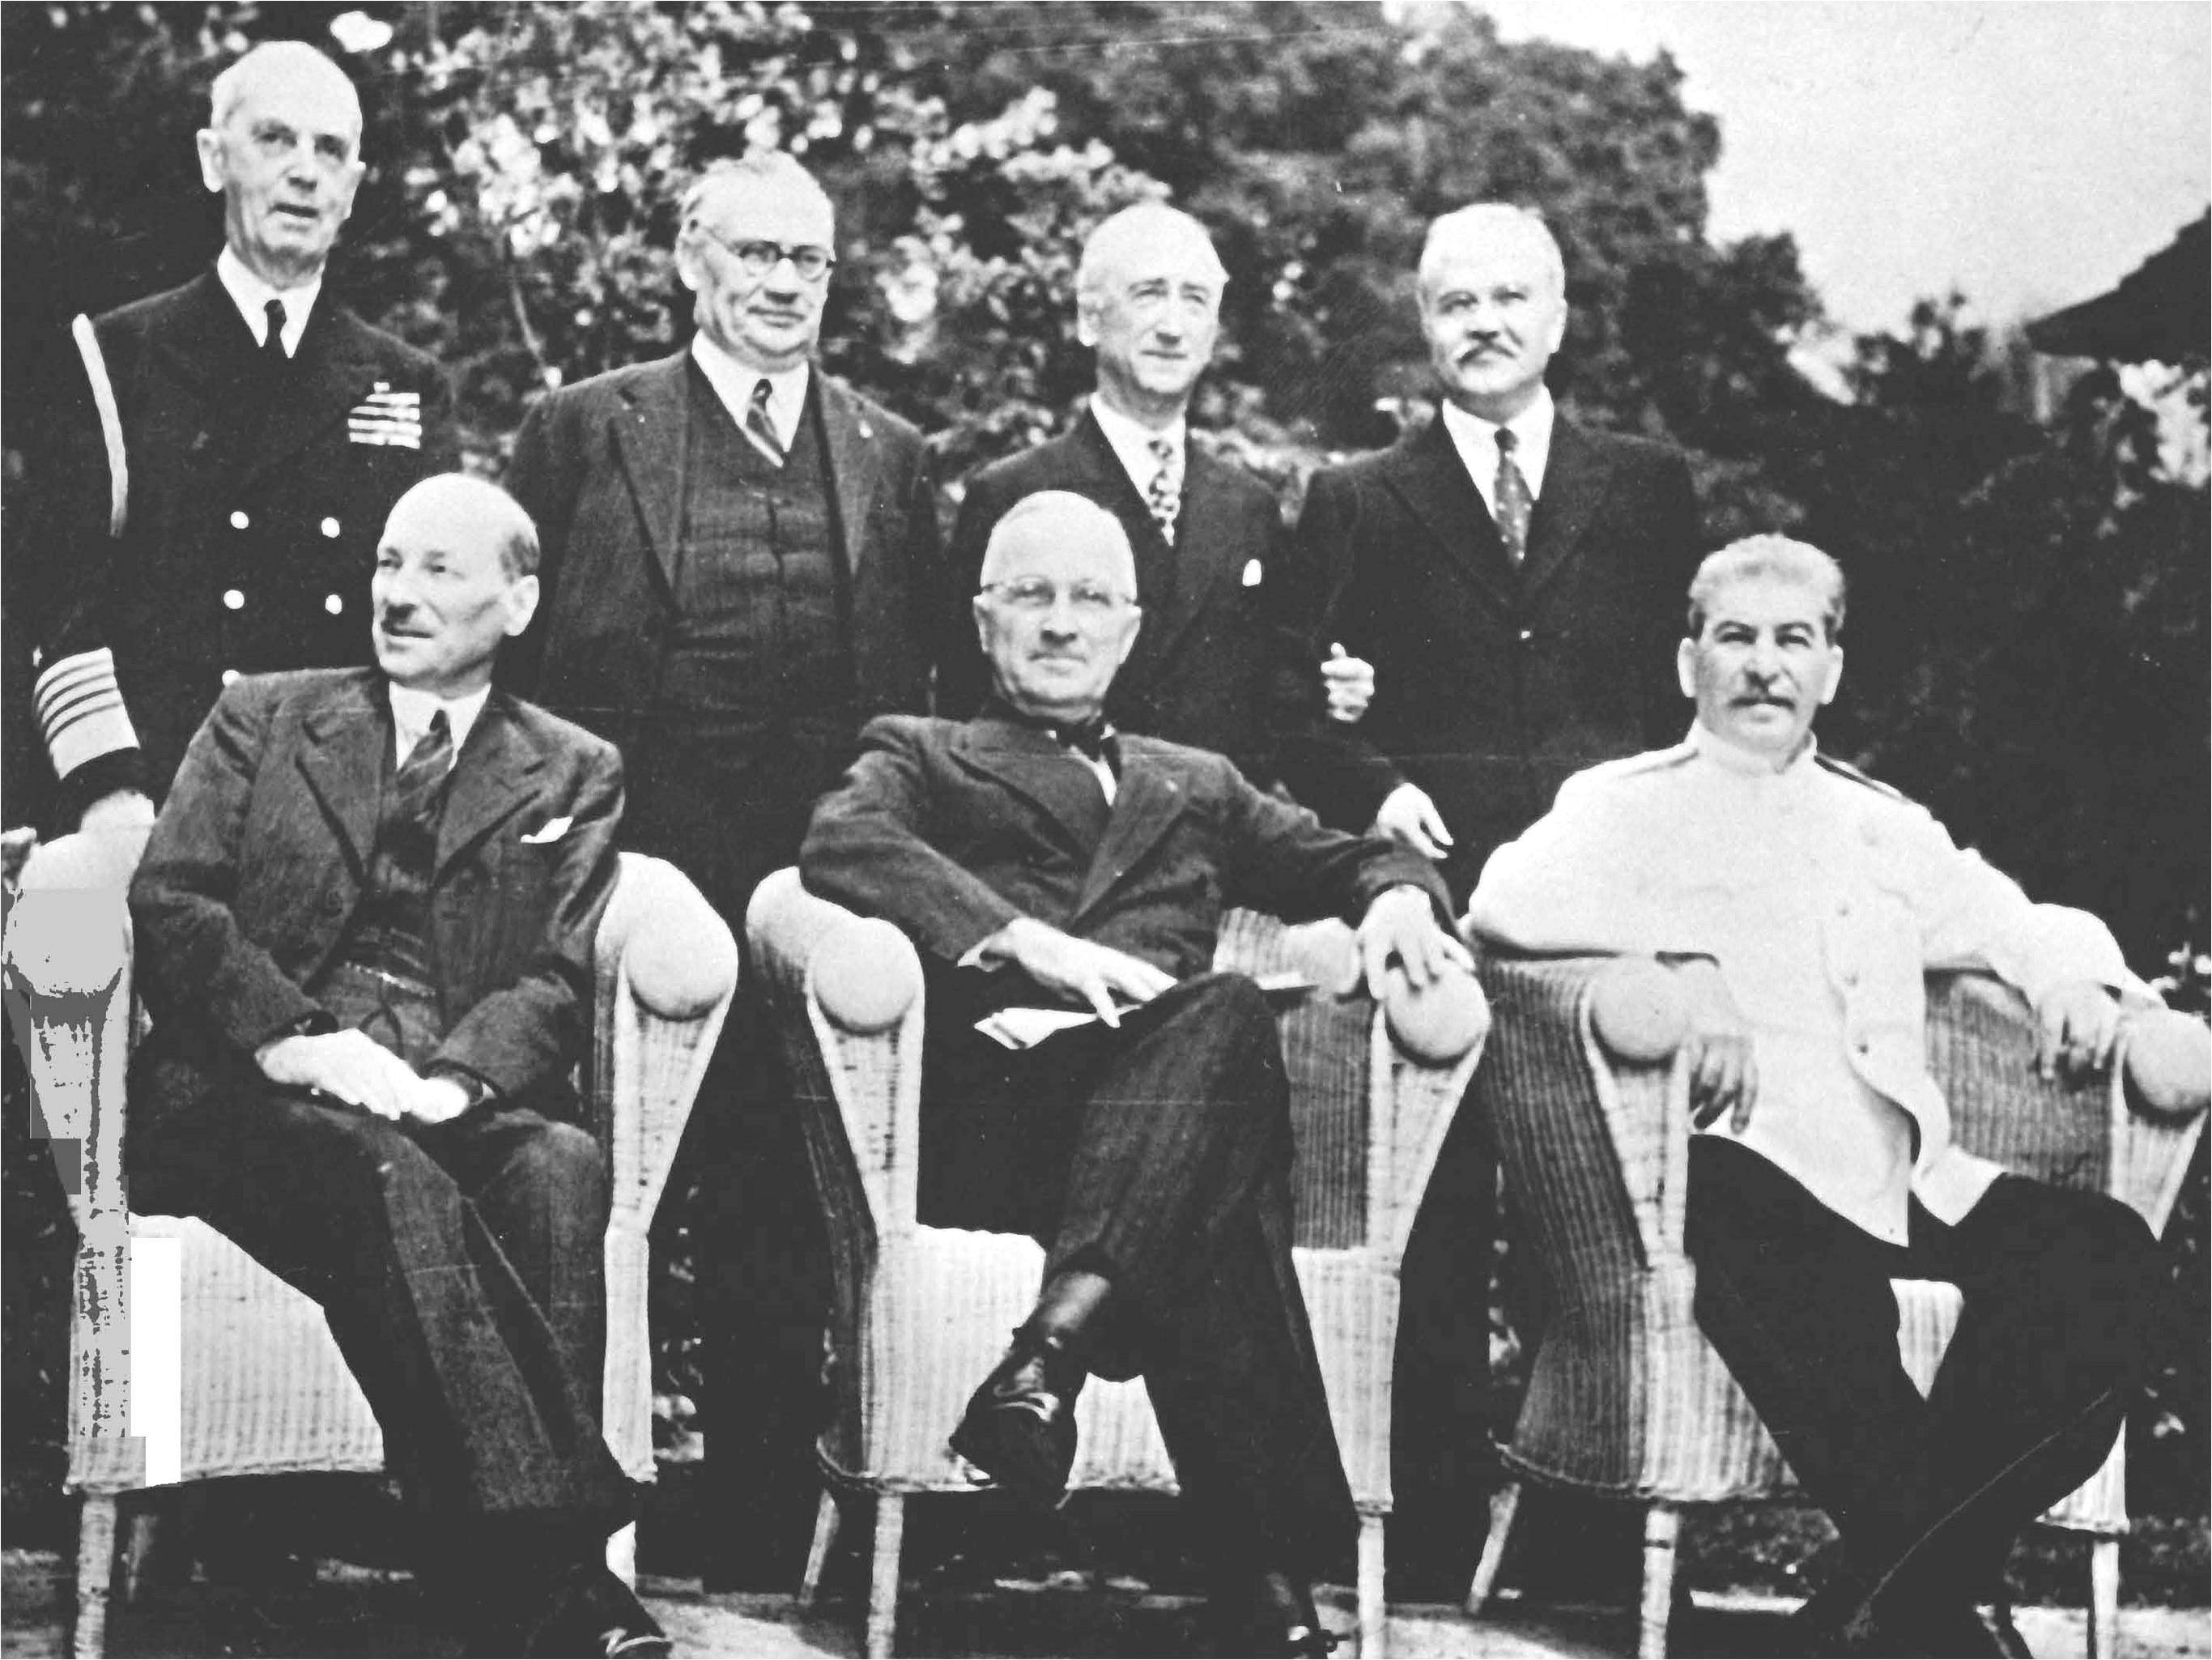 Seated are (left to right): British Prime Minister Clement Atlee; U.S. President Harry Truman; and Soviet Premier Joseph Stalin. Standing behind them are (left ot right): Fleet Admiral William D. Leahy, USN, Truman's Chief of Staff; British Foreign Minister Ernest Bevin; U.S. Secretary of State James F. Byrnes and Soviet Foreign Minister Vyacheslav Molotov.